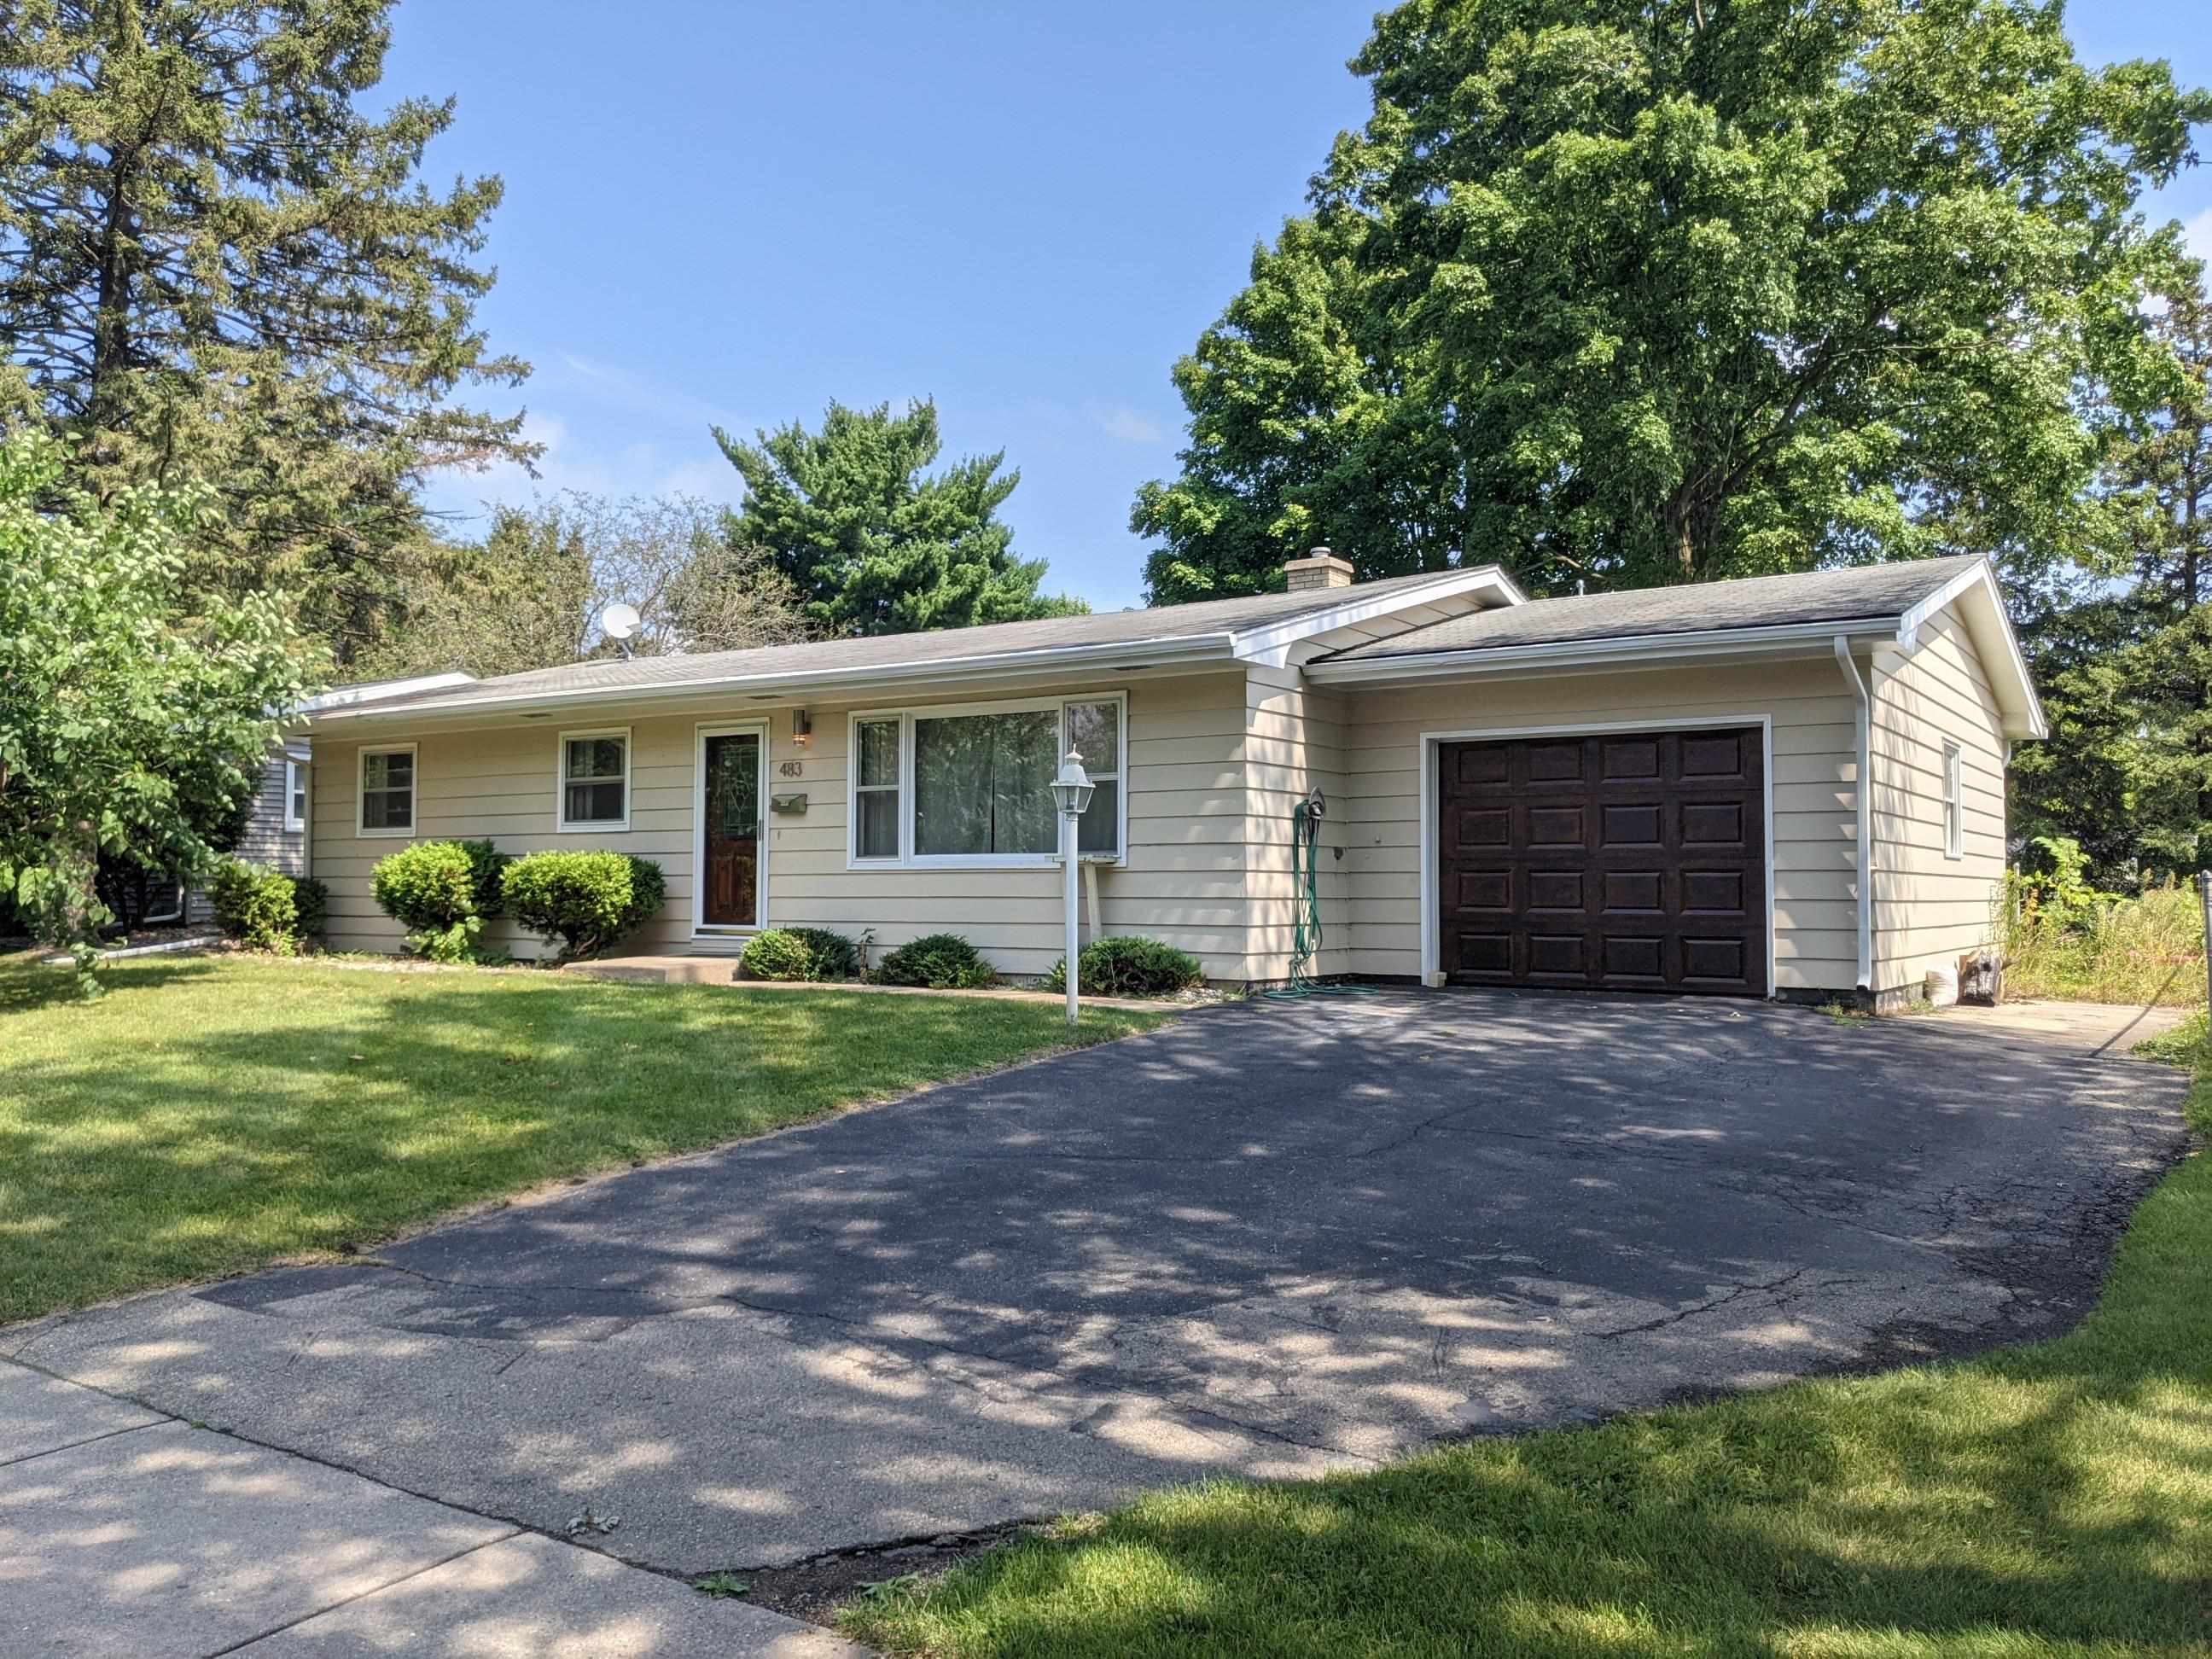 483 Rushmore Ln, Madison, Wisconsin 53711, 4 Bedrooms Bedrooms, ,Rental,For Sale,Rushmore Ln,1918686